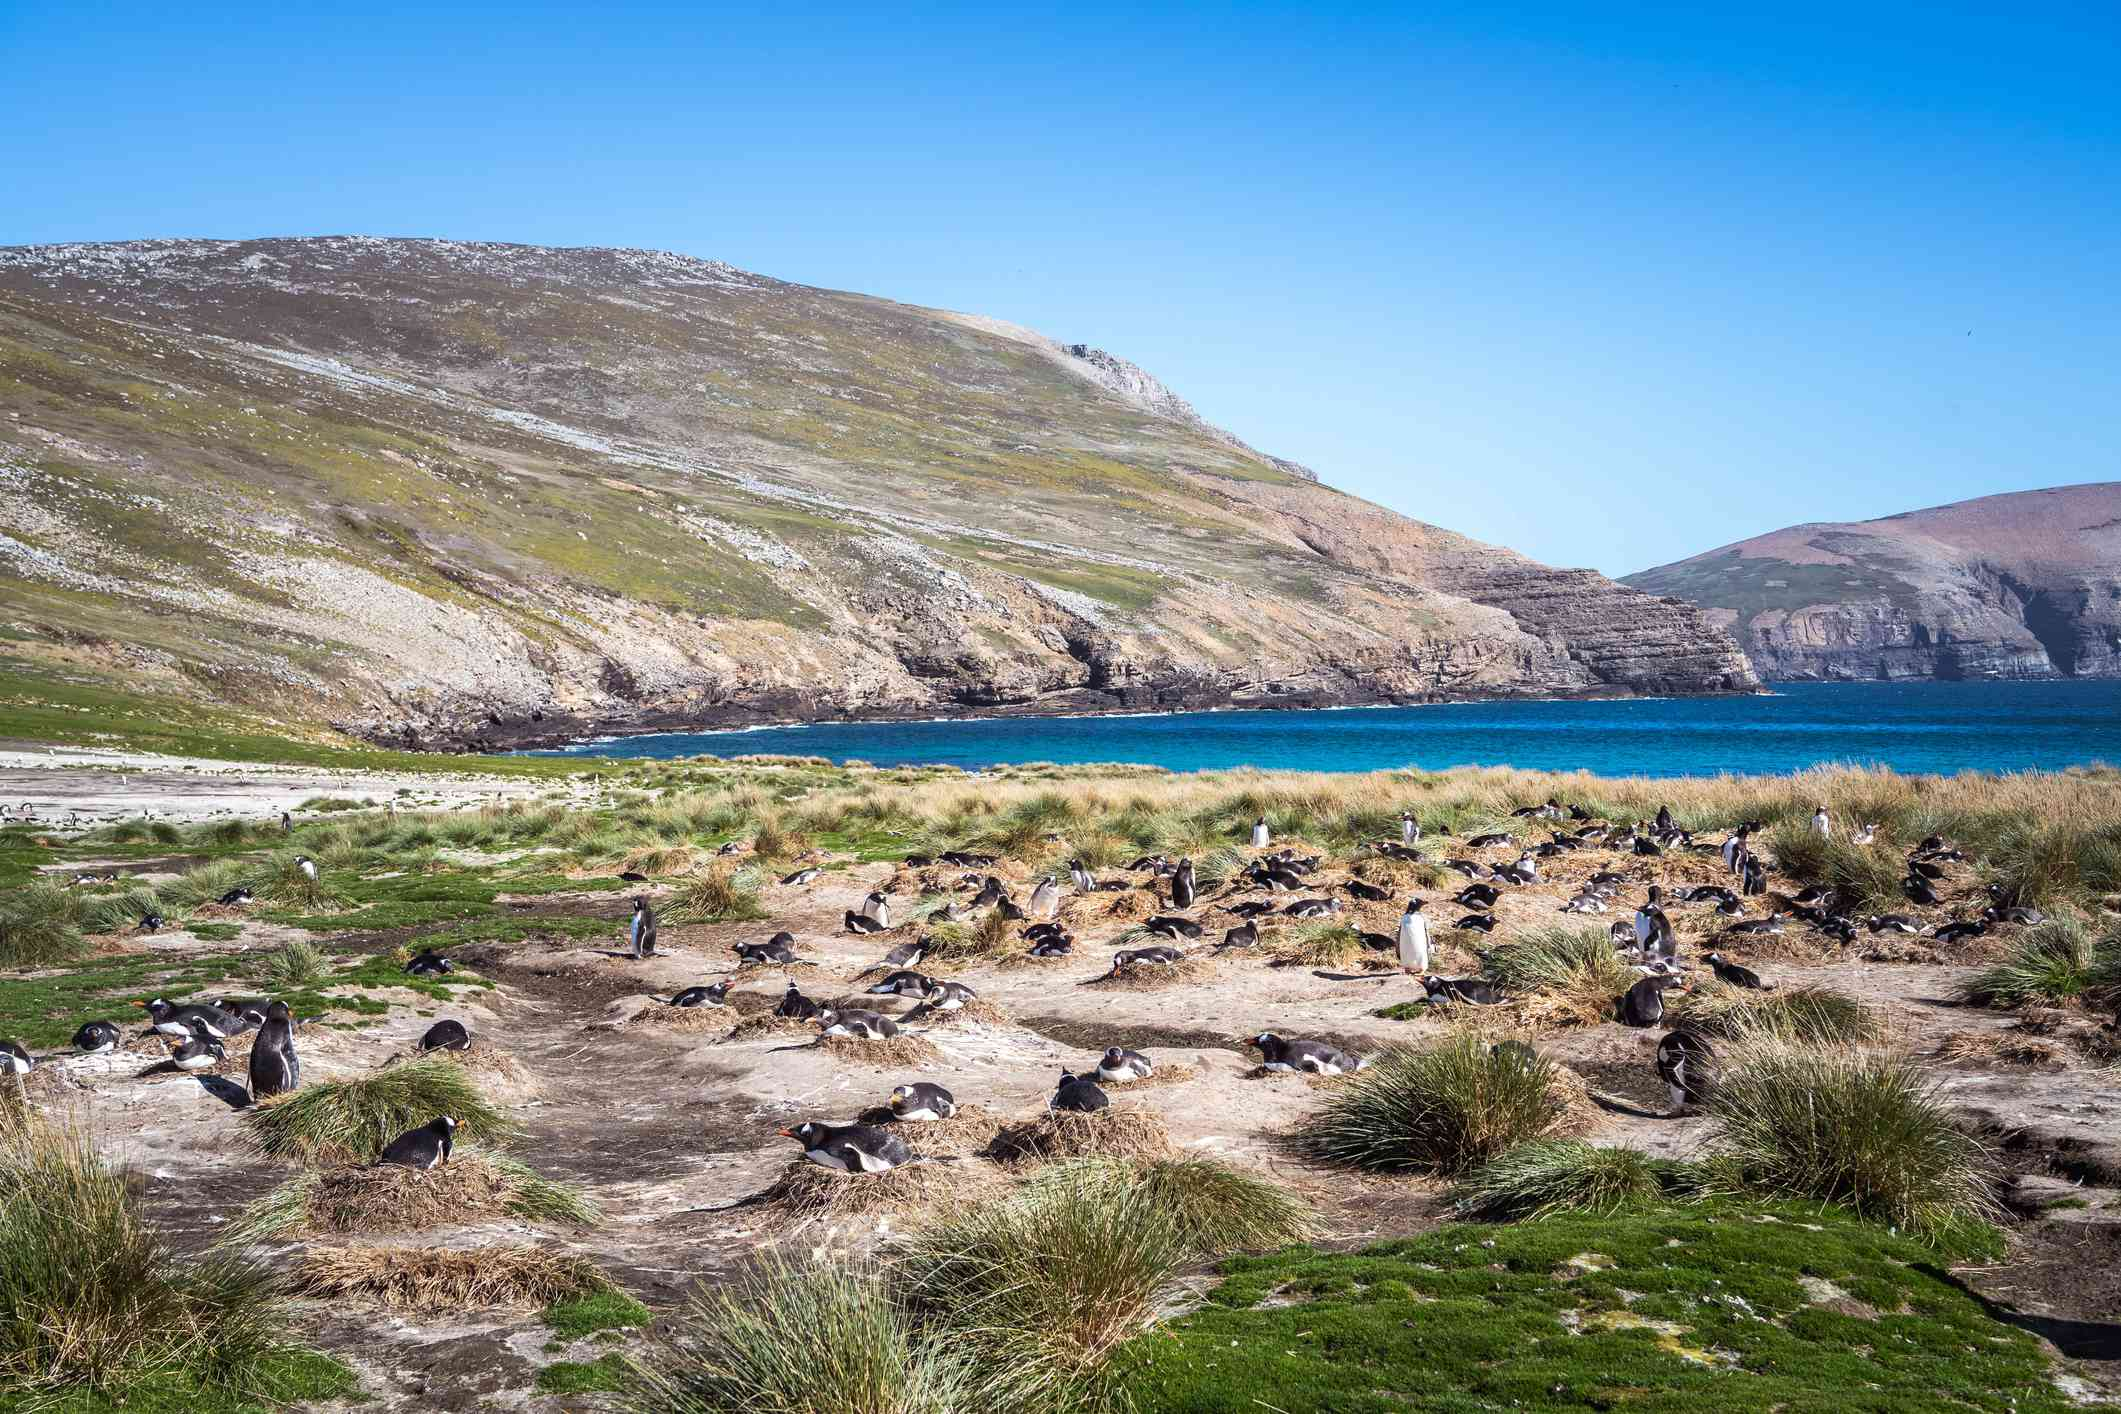 A colony of gentoo penguins nests between tufts of grass on a beach